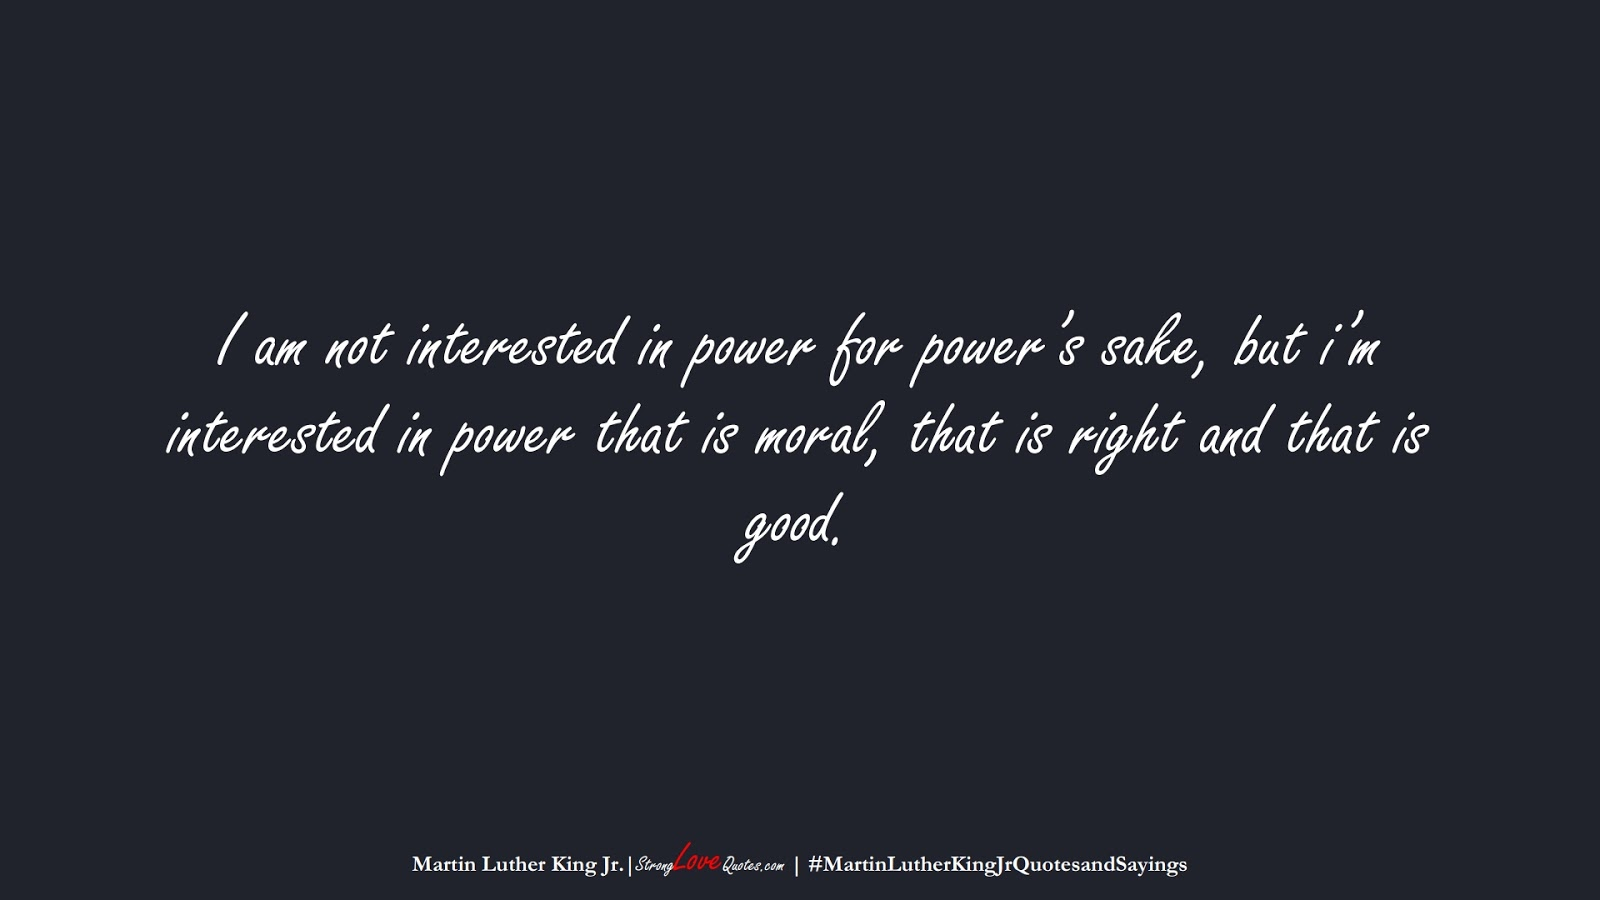 I am not interested in power for power's sake, but i'm interested in power that is moral, that is right and that is good. (Martin Luther King Jr.);  #MartinLutherKingJrQuotesandSayings